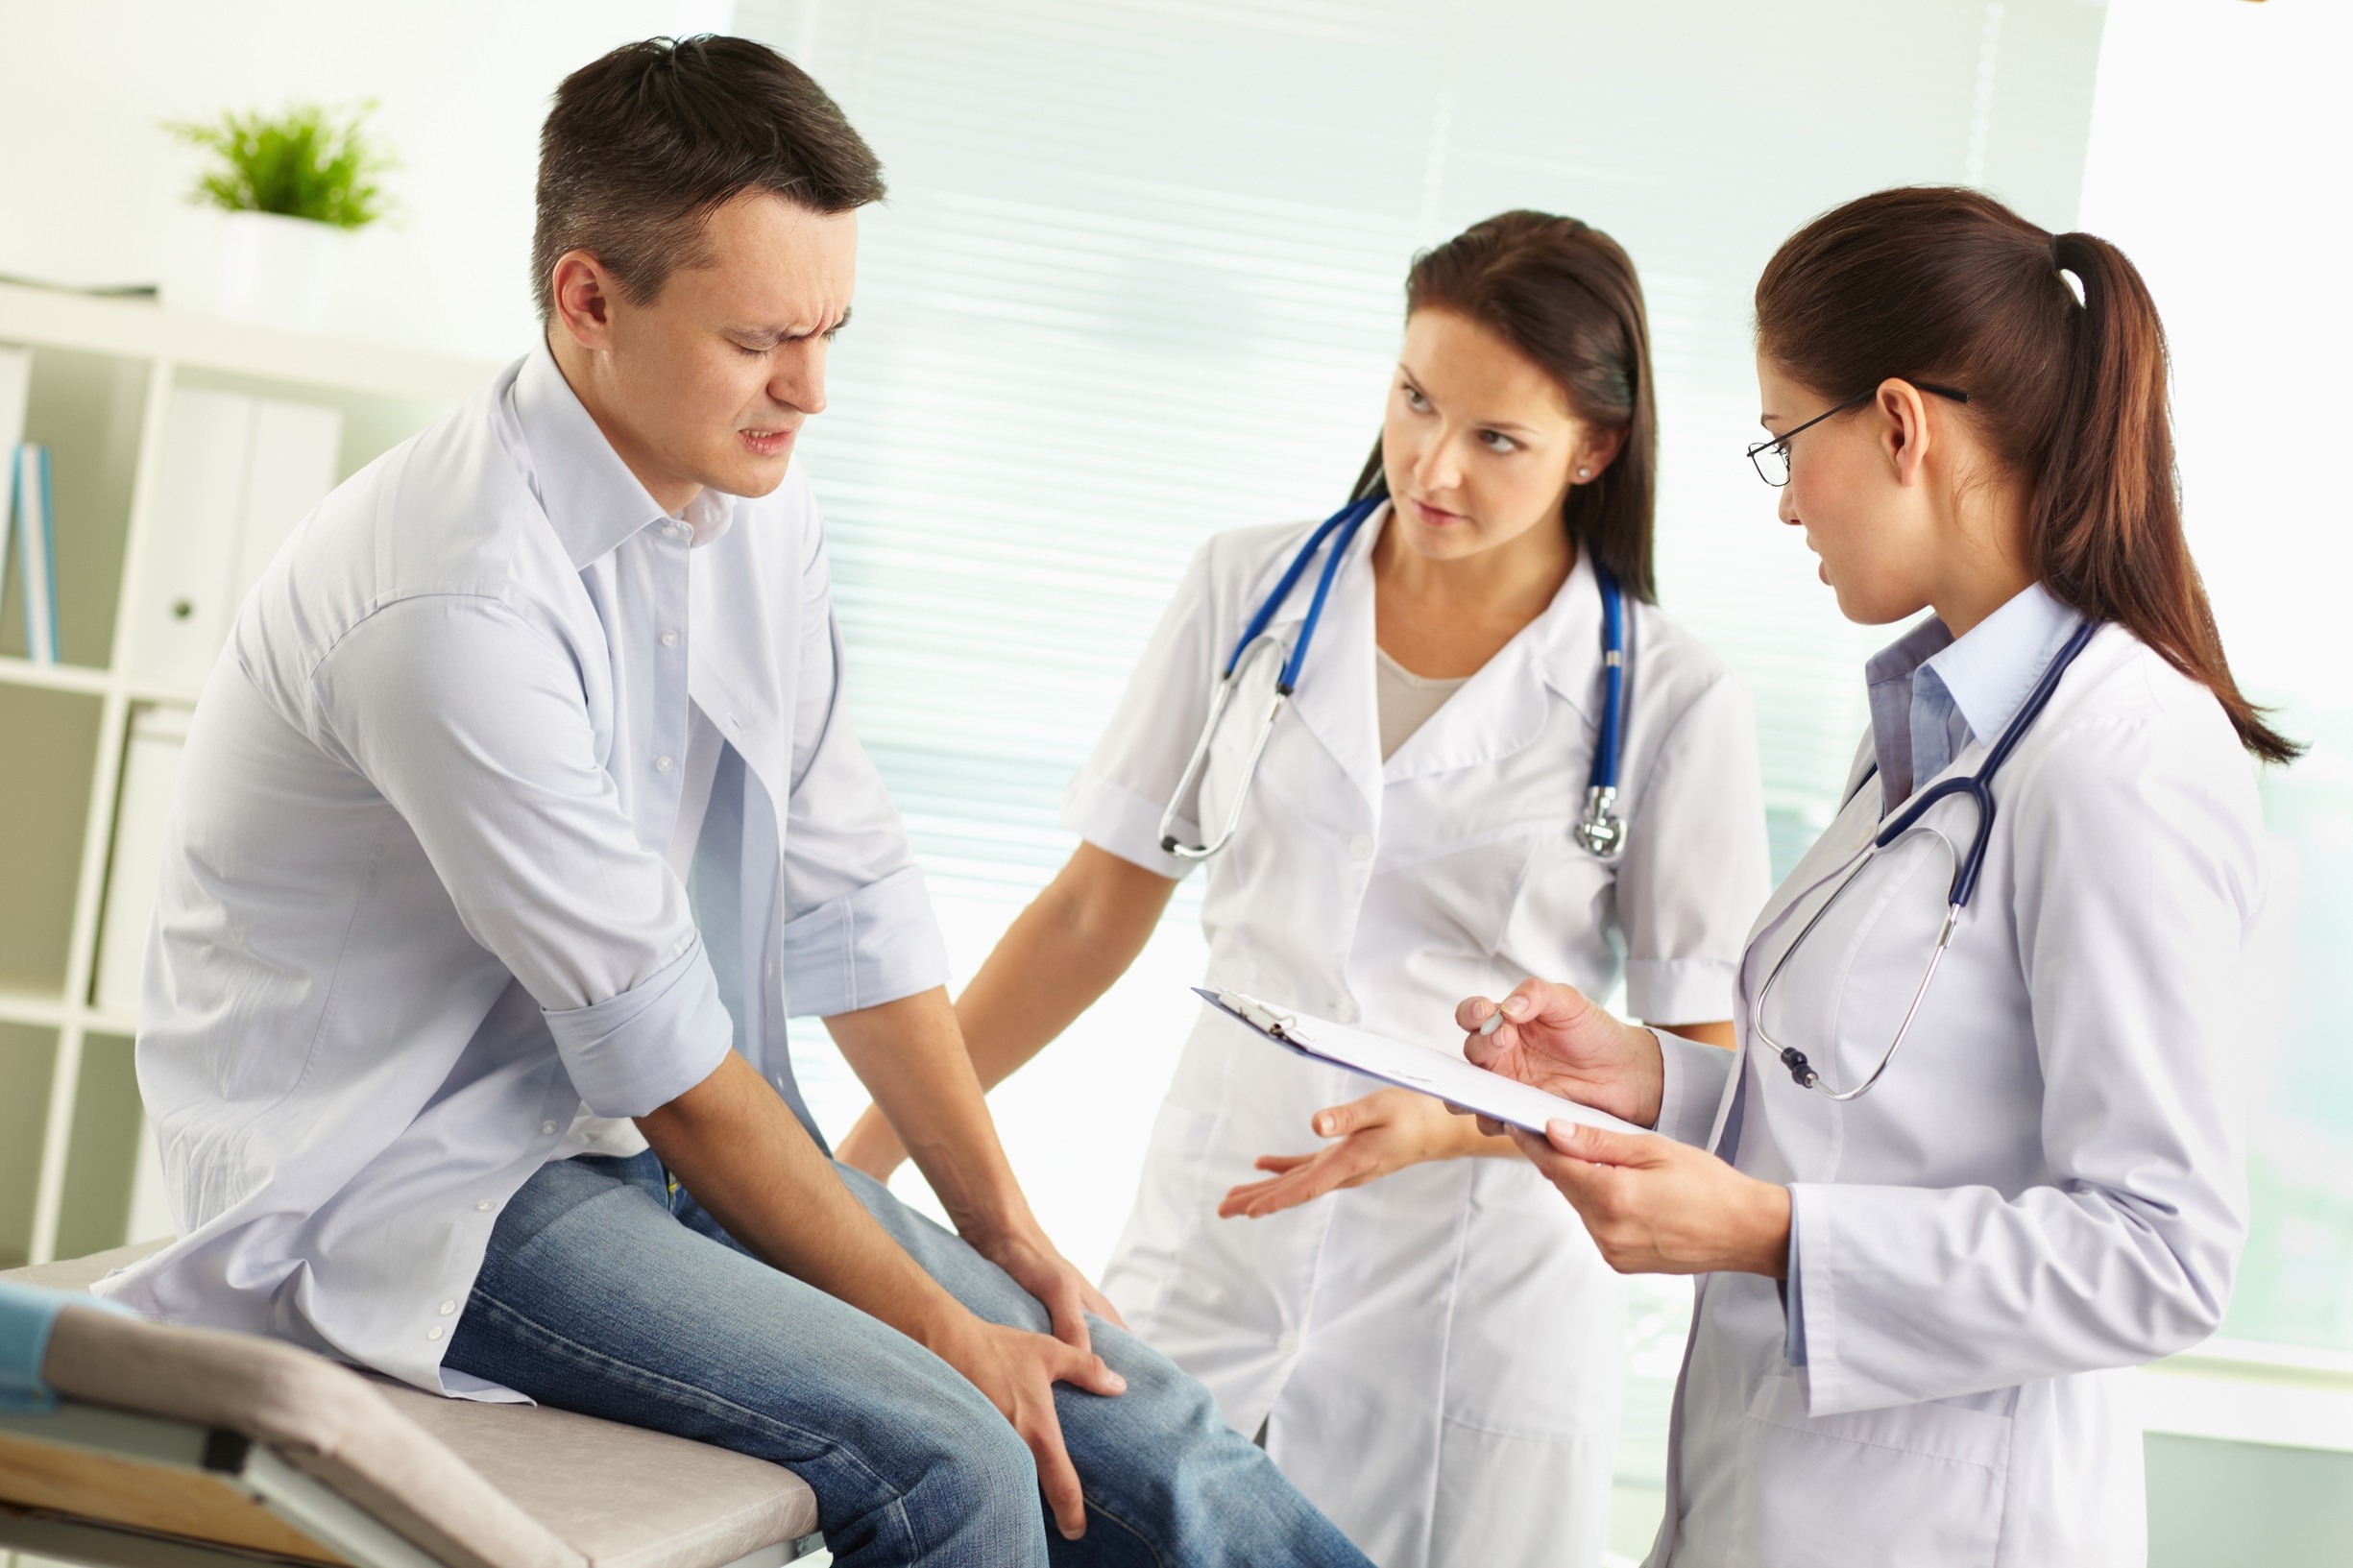 Health south physical therapy - One On One Care